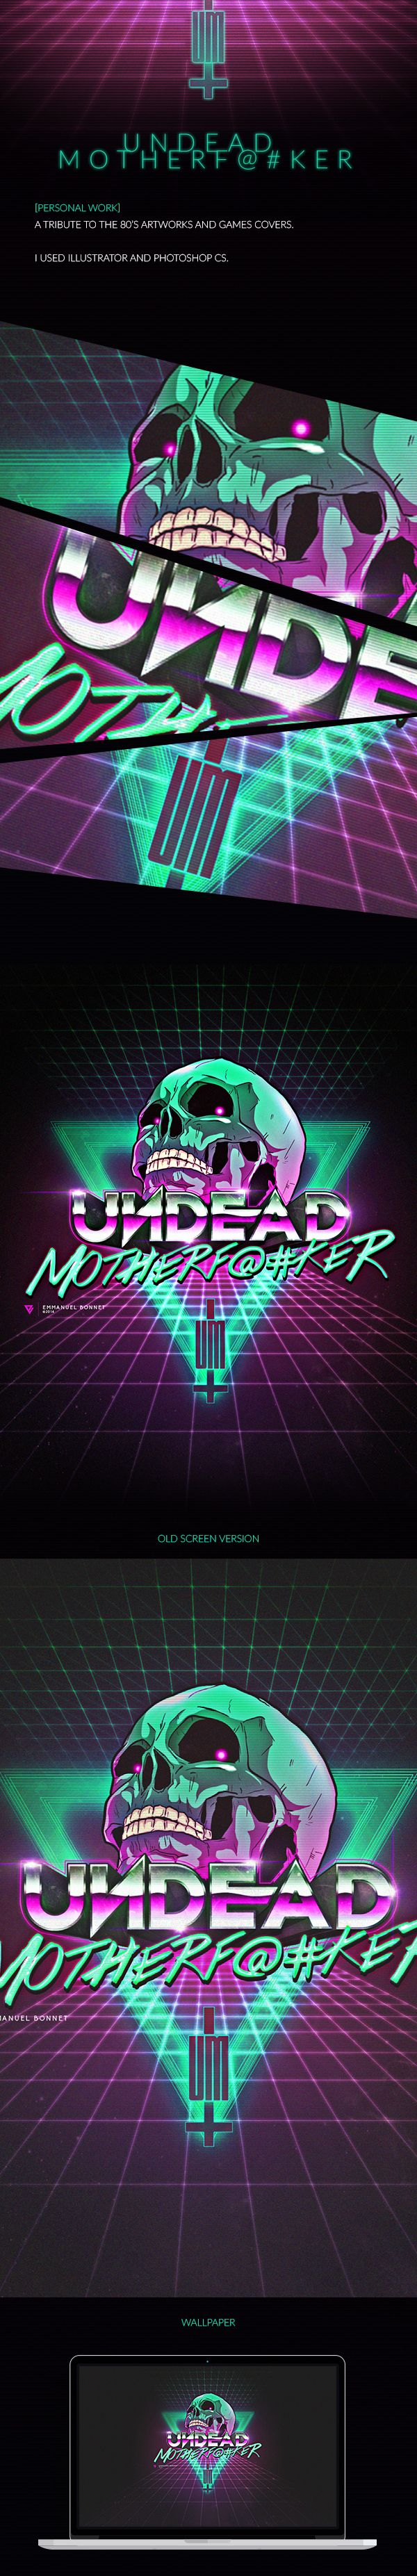 80s poster design - Undead On Behance